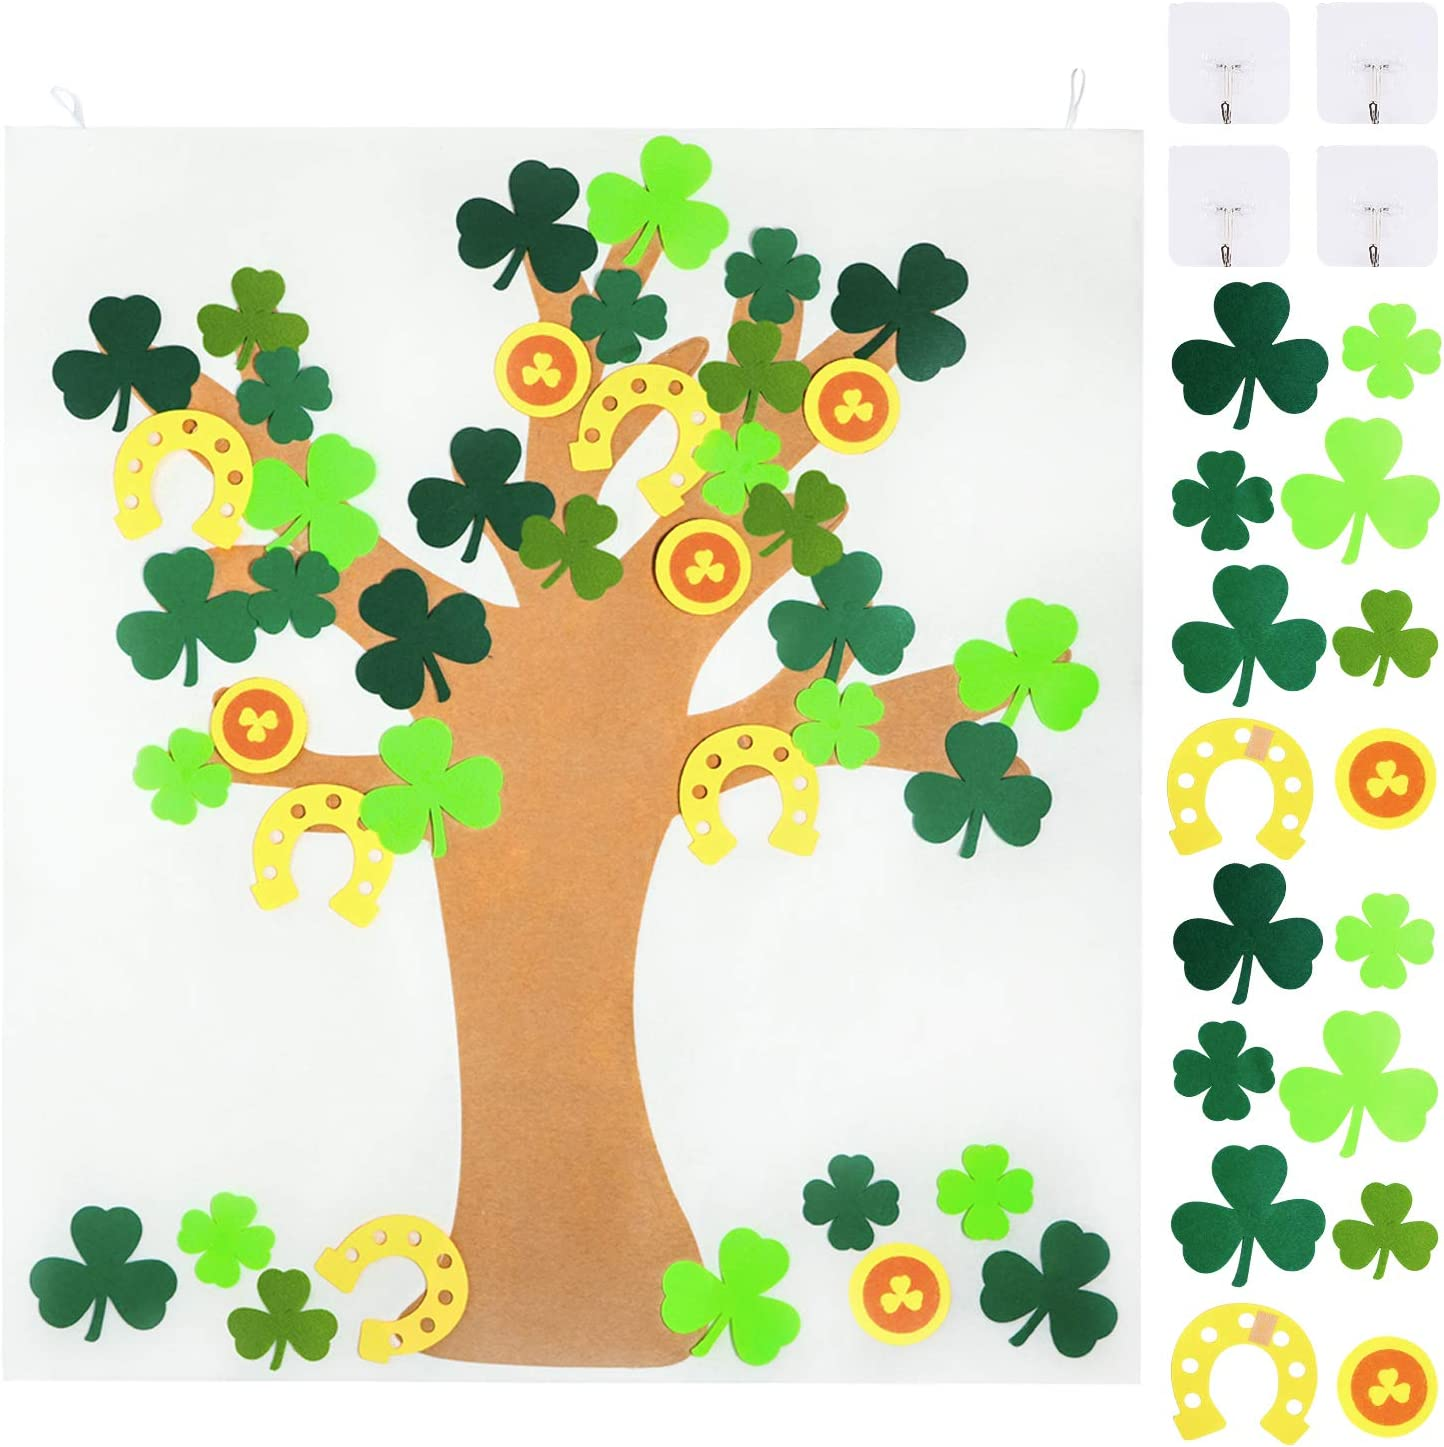 Patrick Party Decorations St WATINC DIY Felt Shamrock Tree with 40Pcs Detachable Ornaments Birthday Party Favors for Kids Good Luck Clover Decor for Patrick Patricks Day Wall Hanging Decoration